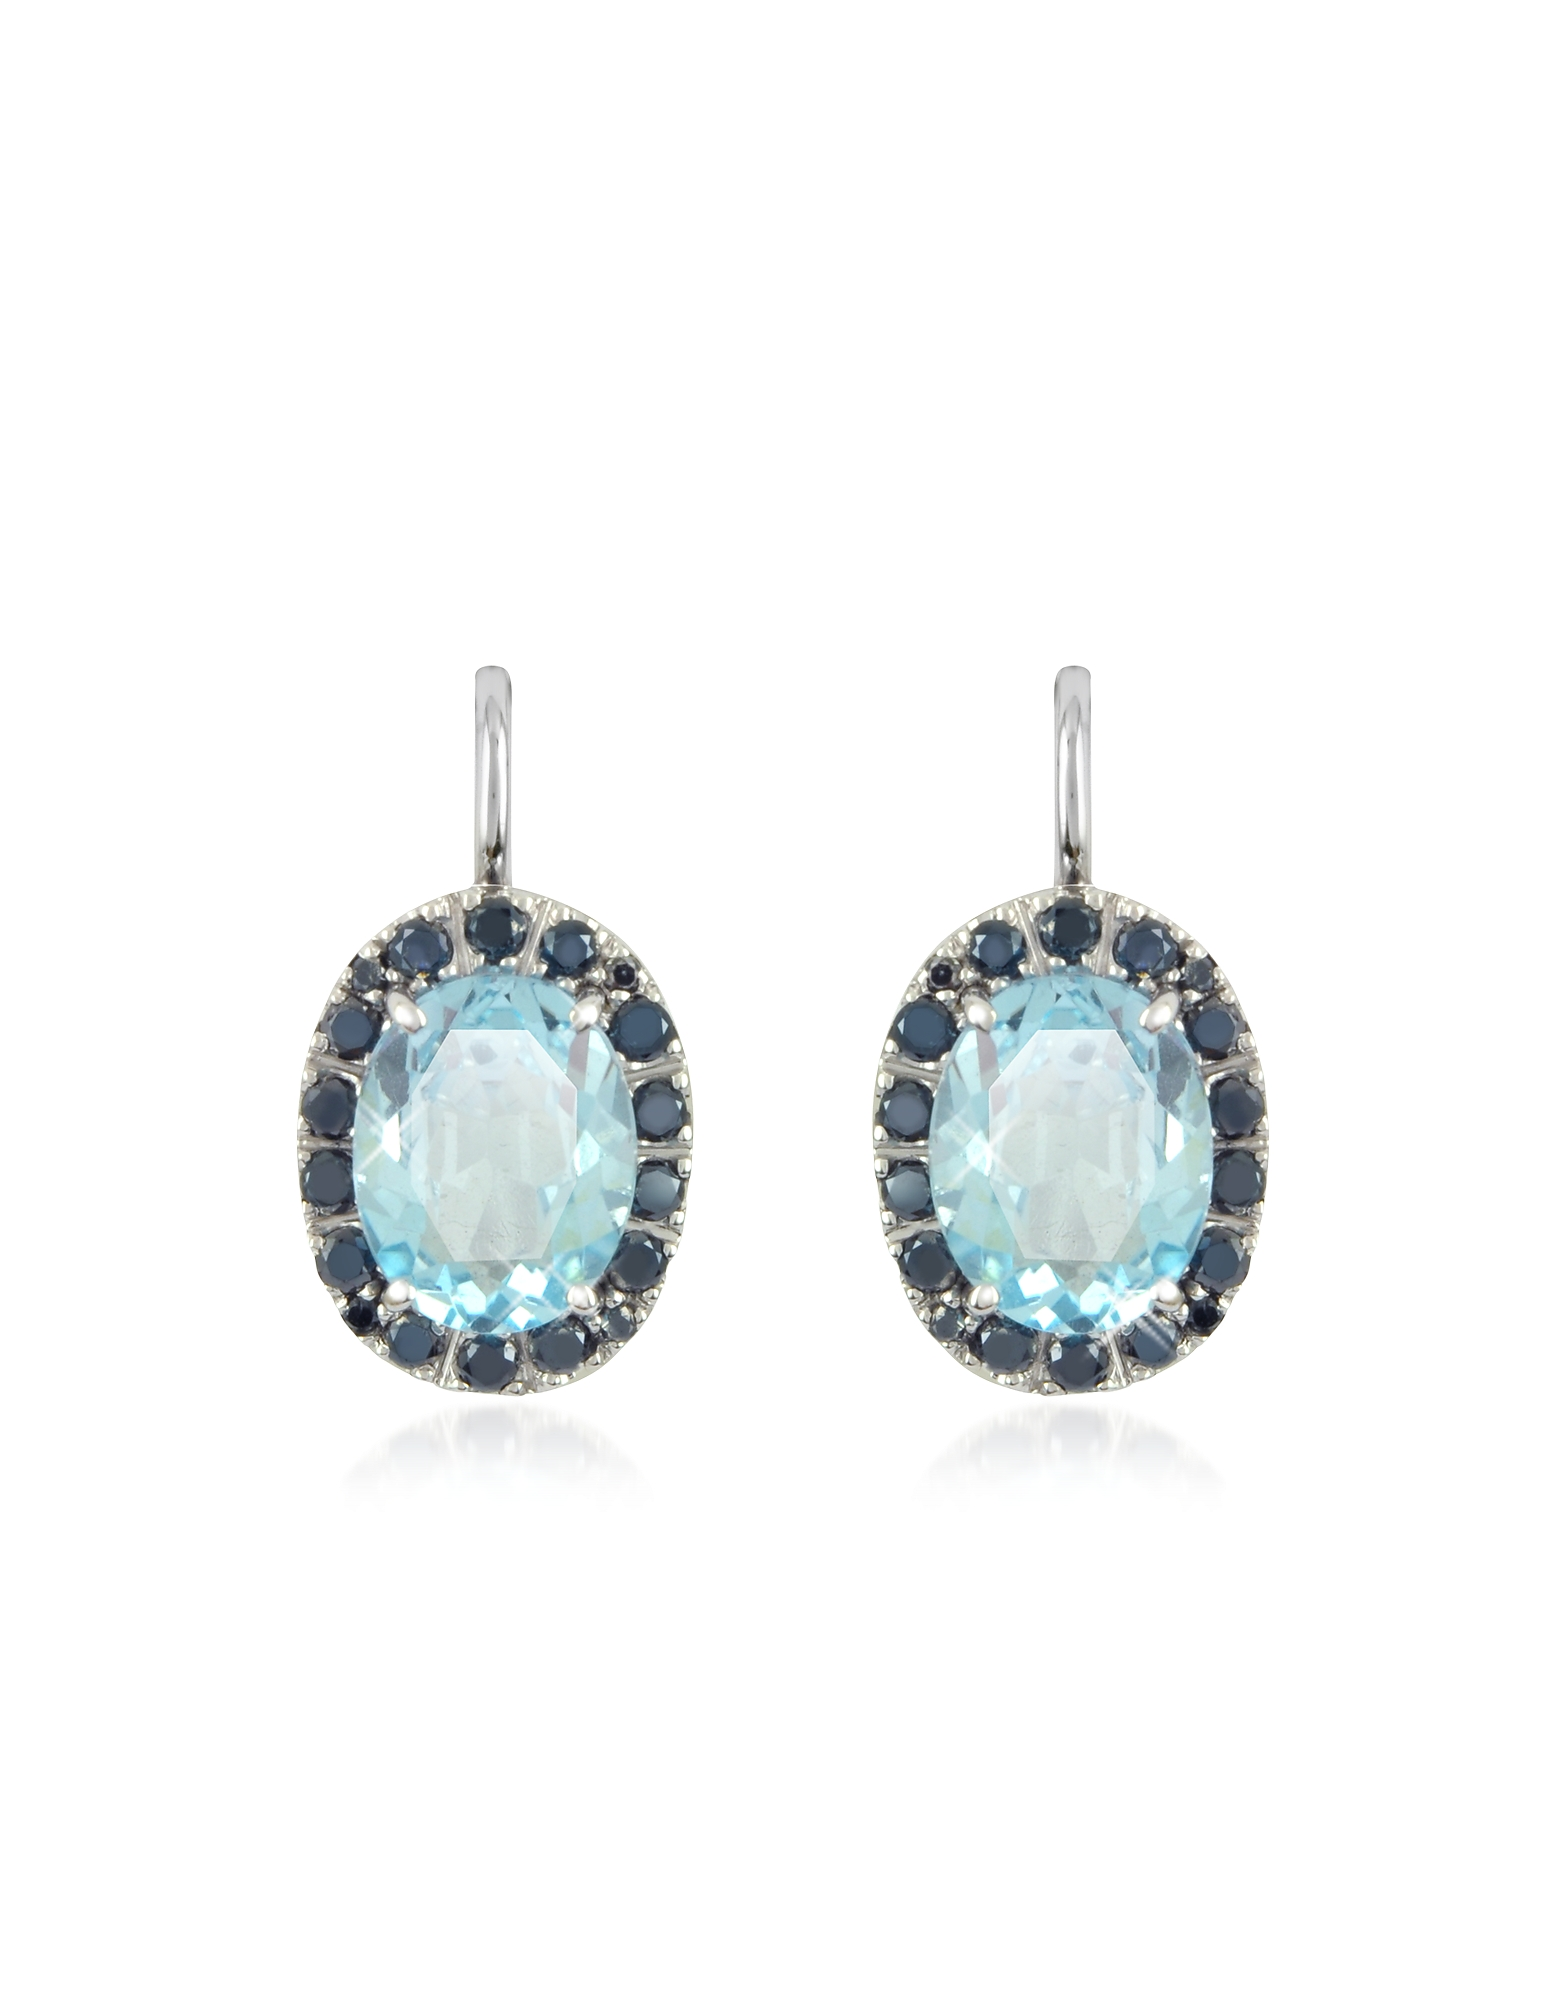 Forzieri Earrings, 0.58 ct Diamond Pave 18K Gold Earrings w/Blue Topaz